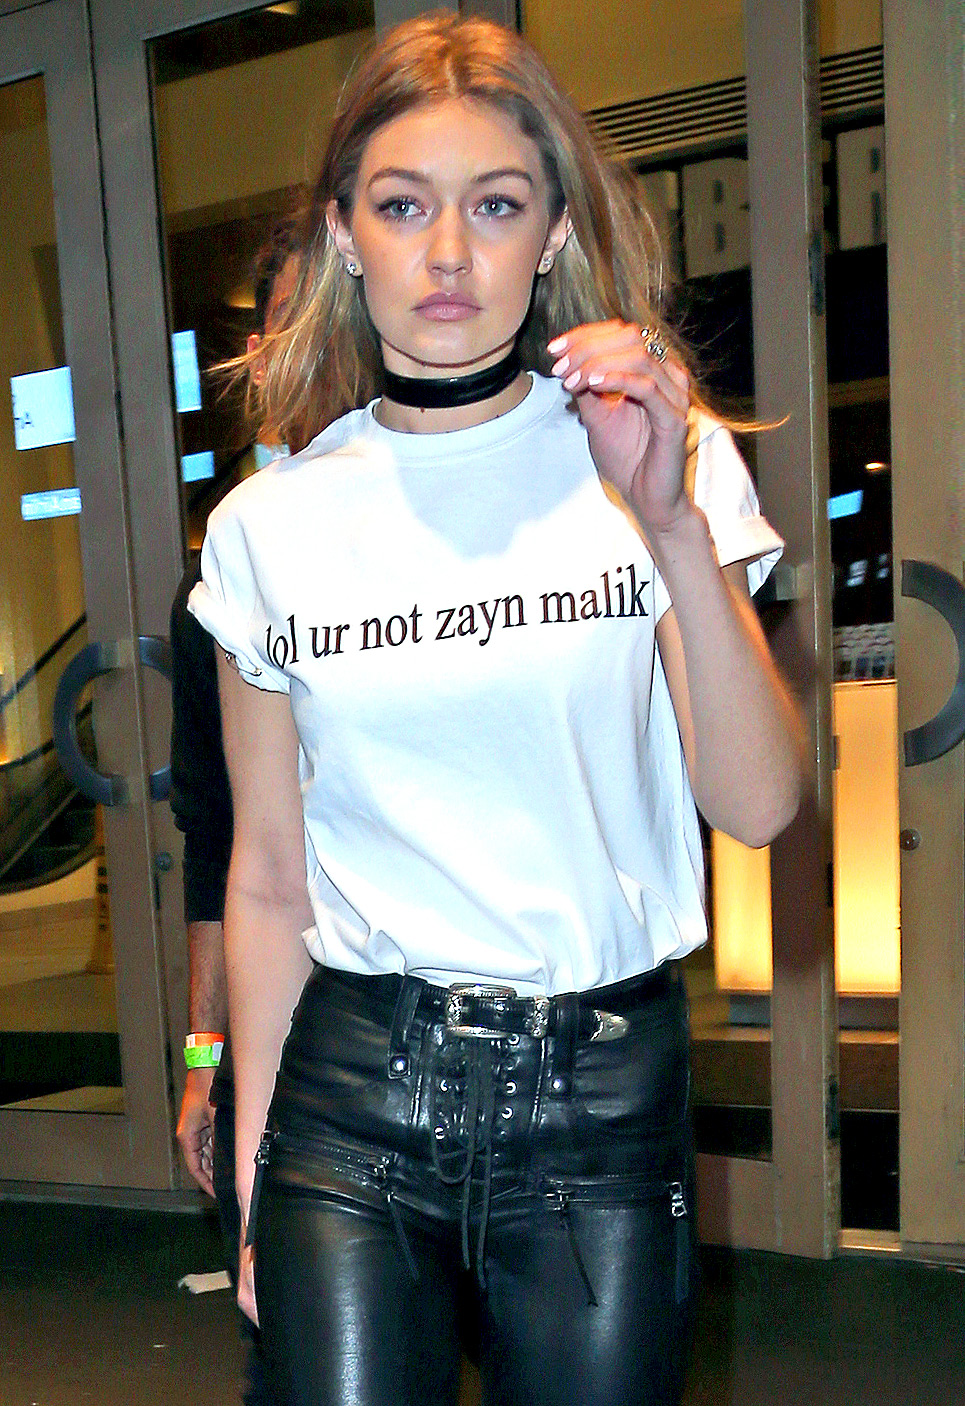 """EXCLUSIVE: Gigi Hadid pictured wearing a shirt that says """"lol Ur Not Zayn Malik"""" leaving Drakes Saturday Night Live after party at Dave and Buster's in Times Square New York City."""